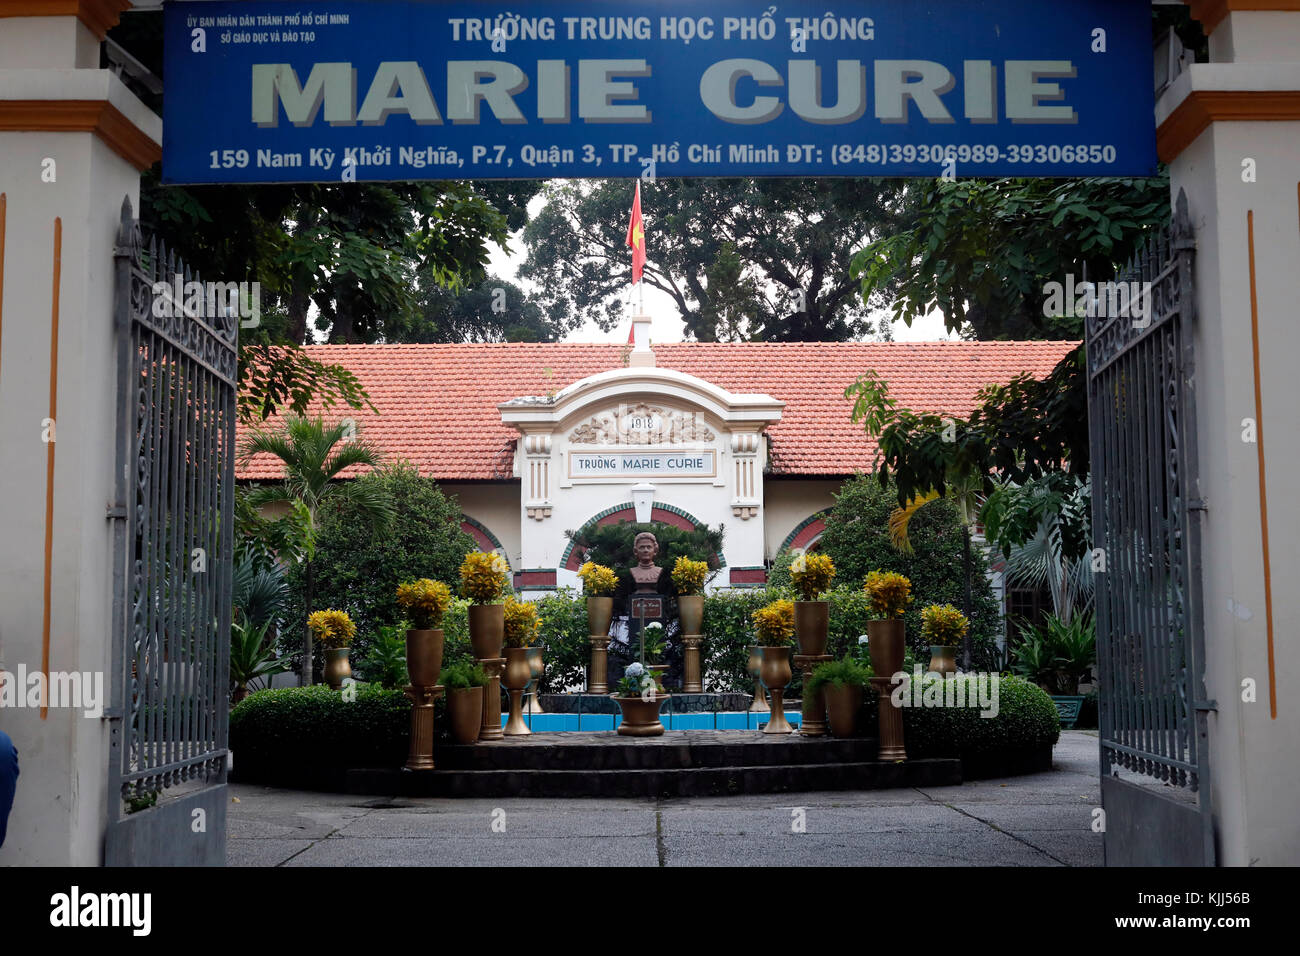 Marie Curie school.  French colonial architecture.  Ho Chi Minh City. Vietnam. Stock Photo